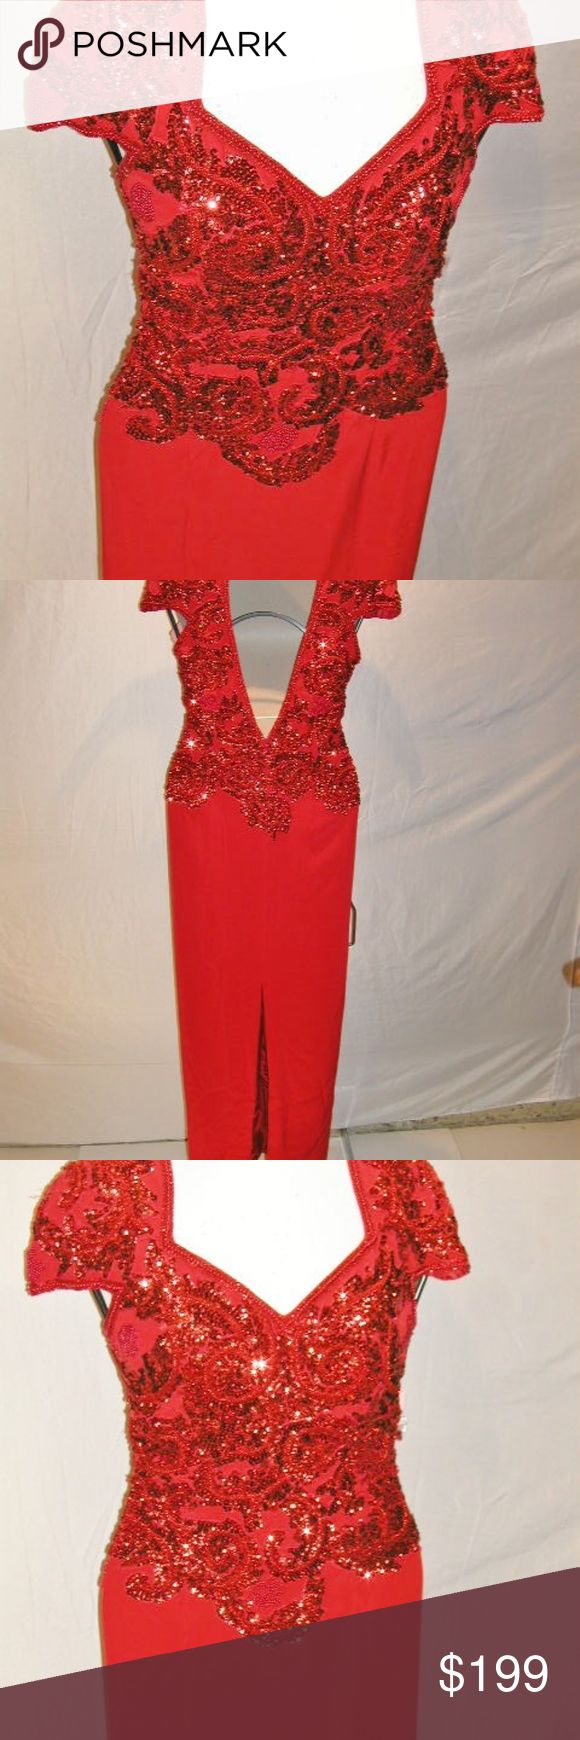 C5 1038 gown, formal, after-five, cocktail, bride, S12... Red... Sold for...530$     Remember price-increase after 7-days!  Regardless of size; a custom fit needs a Seamstress/Tailor. For great online deals... knowing your measurement is key but if not sure, if possible Buy (Slightly) Large. It's easier to alter down, then up. These prices, why not?   Right Out-of-the-Box garments are priced ridiculously low; after price-increase it's rarely reduced further.    Never or may be gently worn…